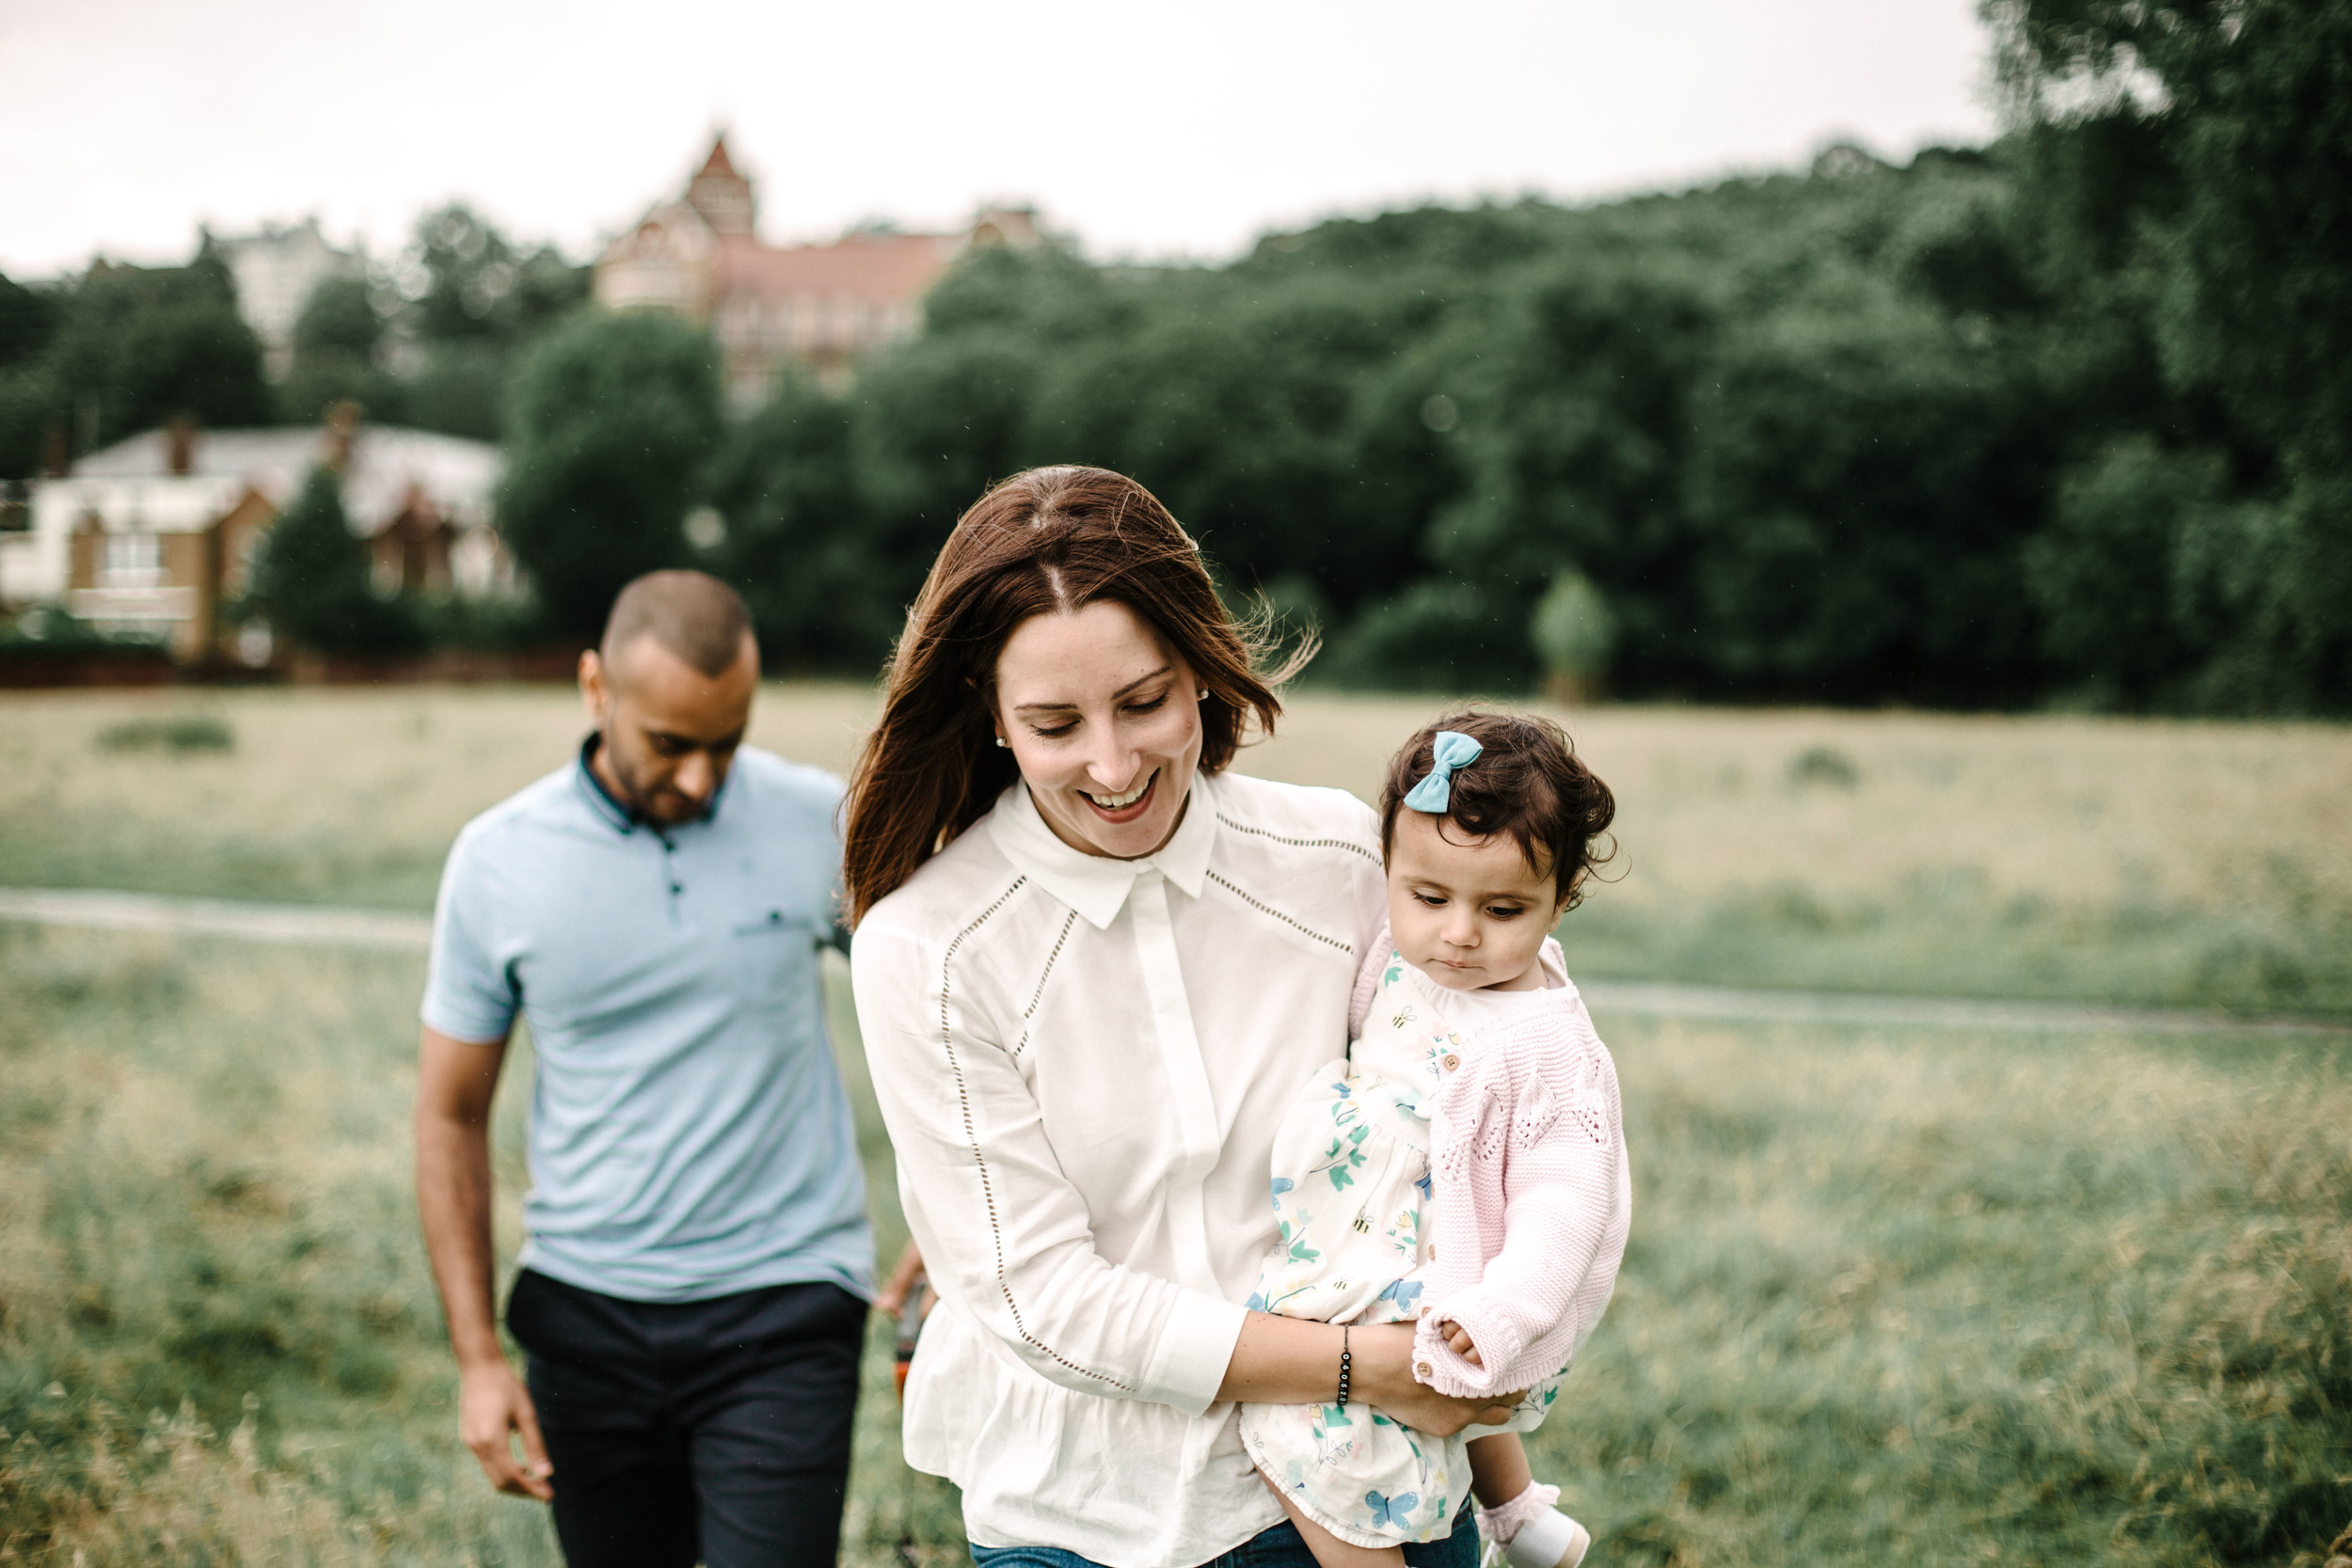 LittleKin_Photography_Family_Photoshoot_Richmond_hollyandjay-26.jpg